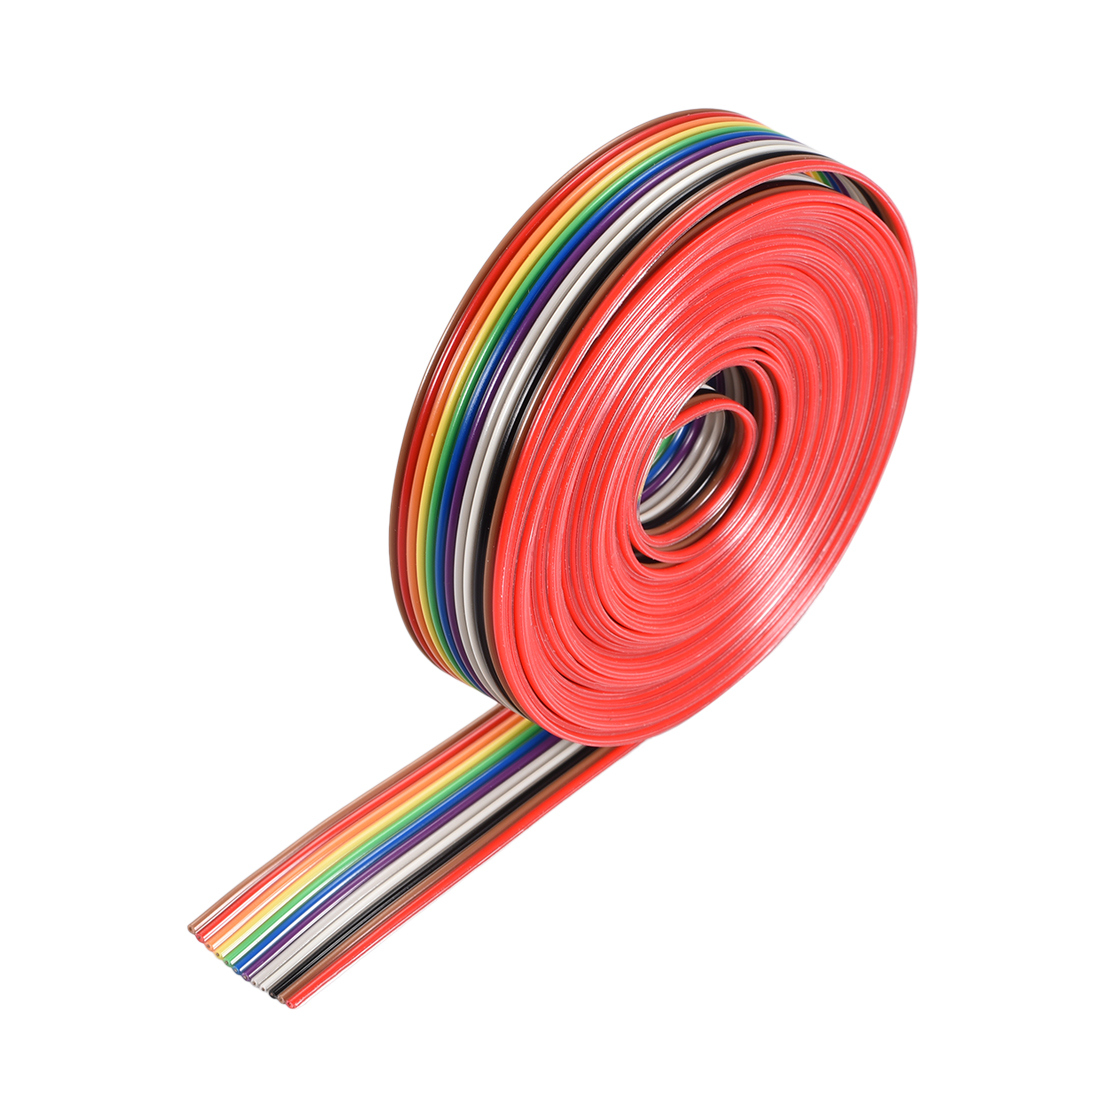 IDC Rainbow Wire Flat Ribbon Cable 12P 1.27mm Pitch 3meter/9.8ft Length